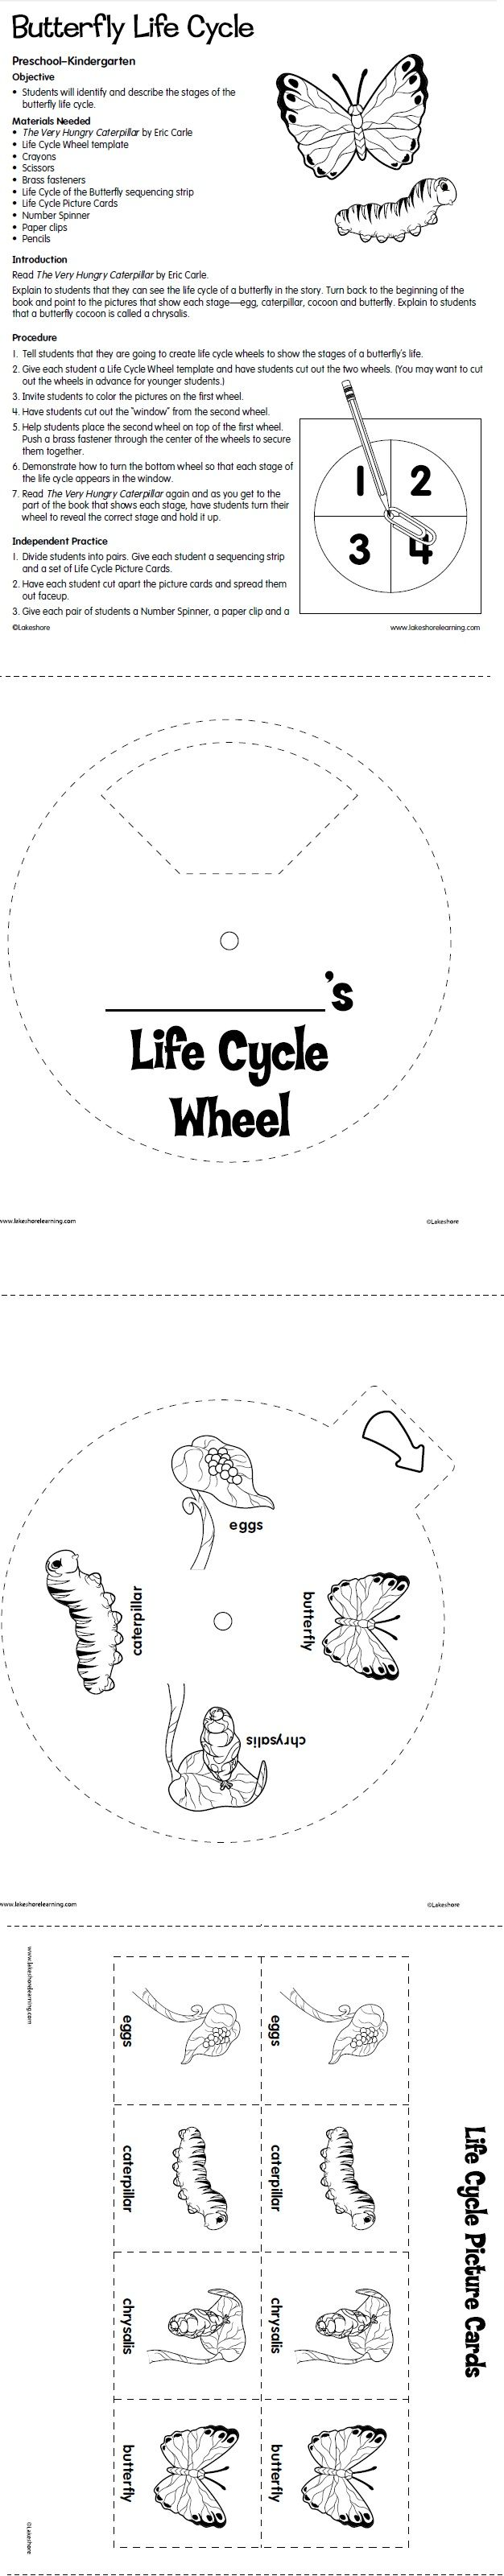 15 must see life plan template pins project life layouts click site and check out hot cycling t shirts hoodies this website is top notch tip you can type your last or your favorite shirts by